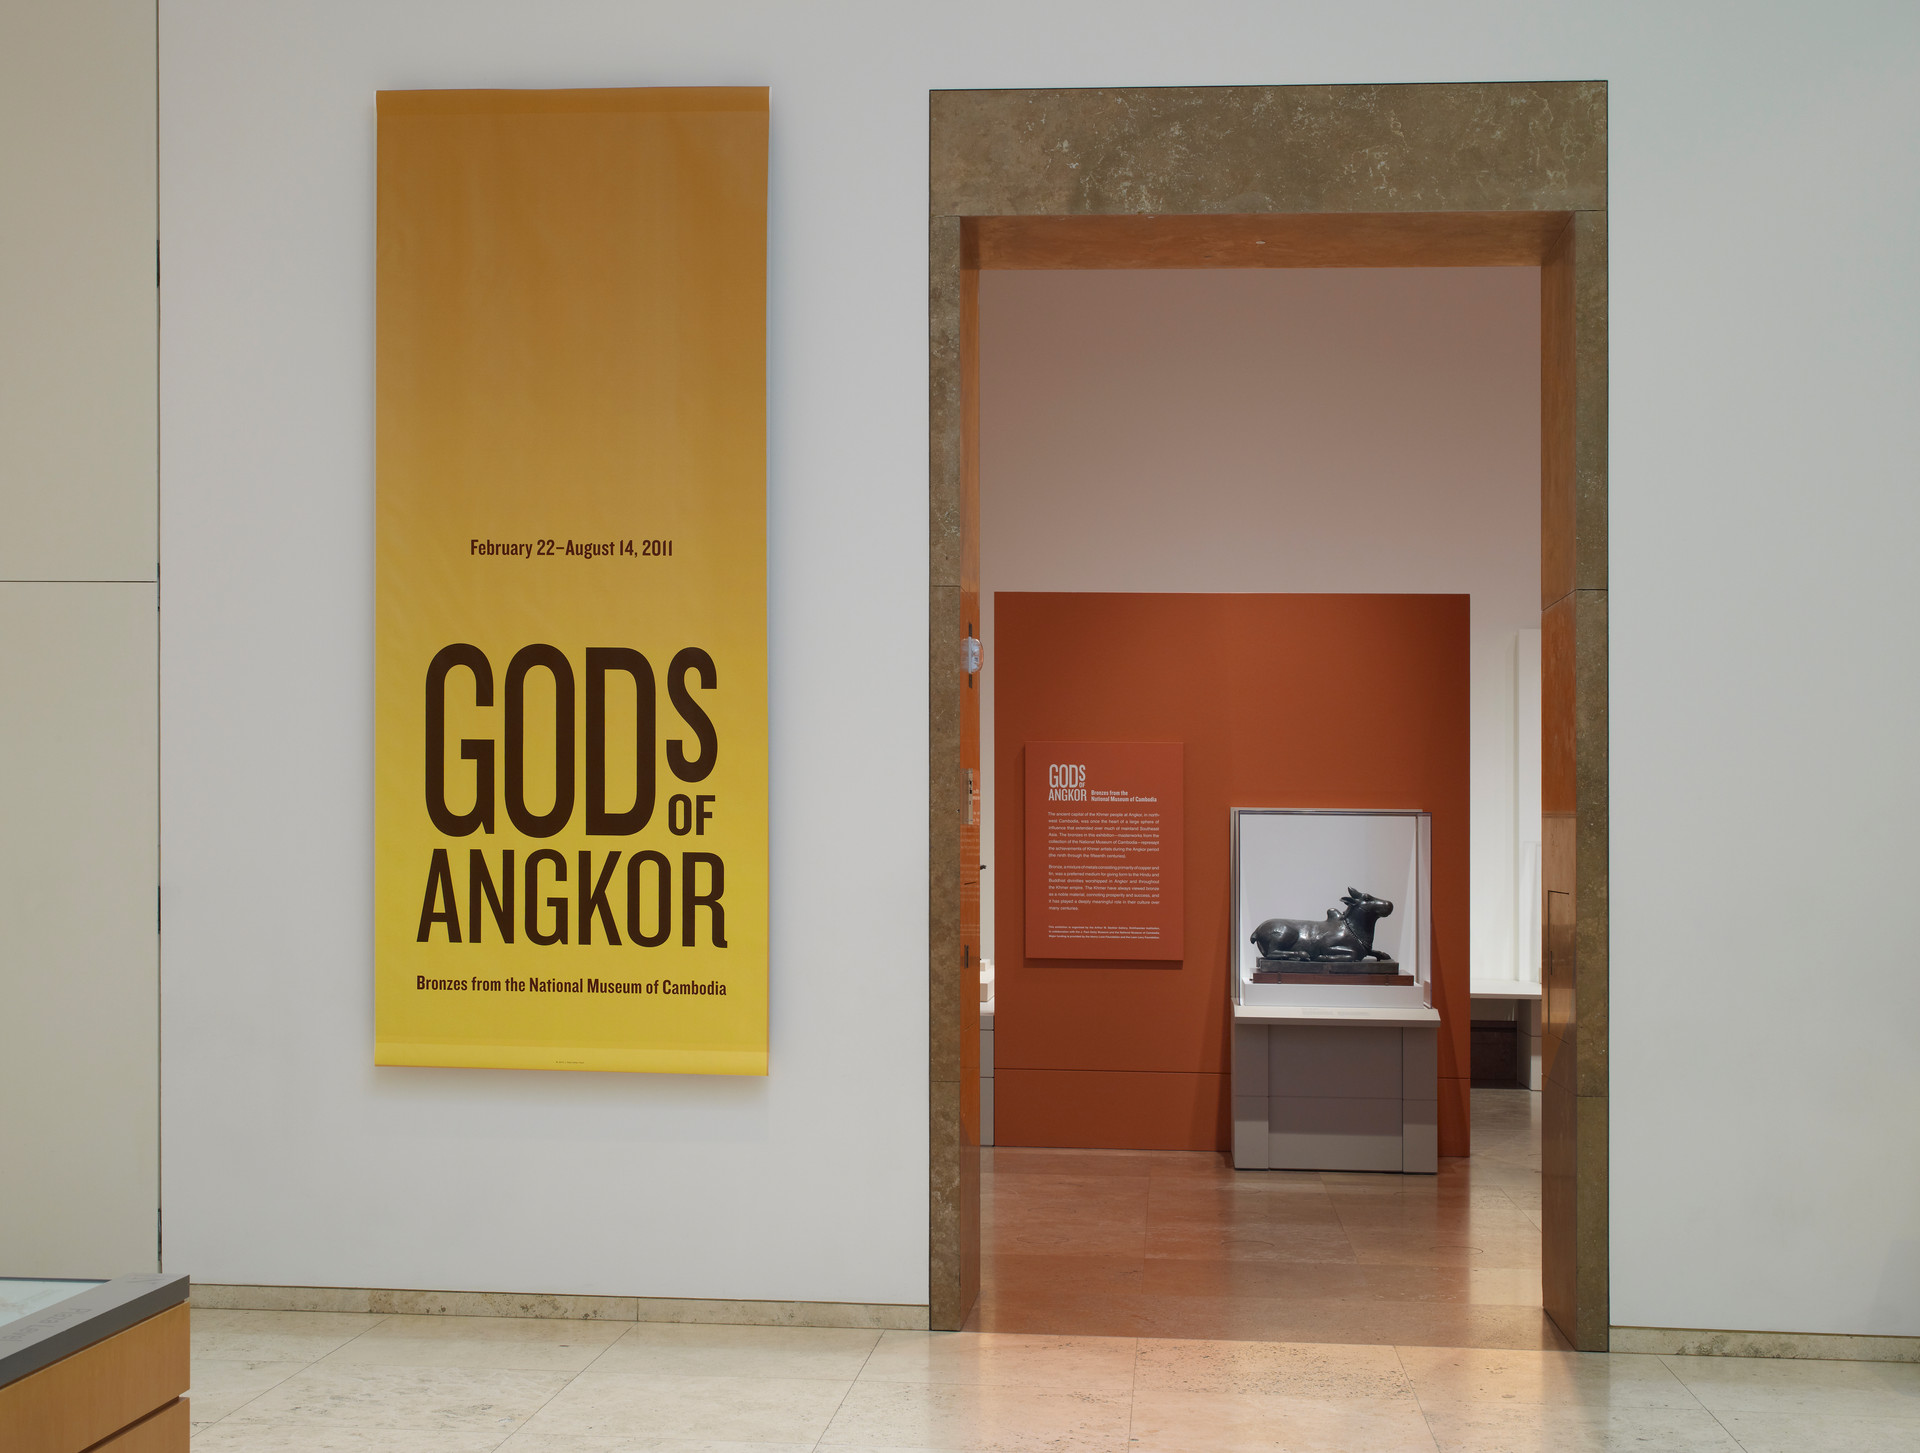 Exhibition title wall.